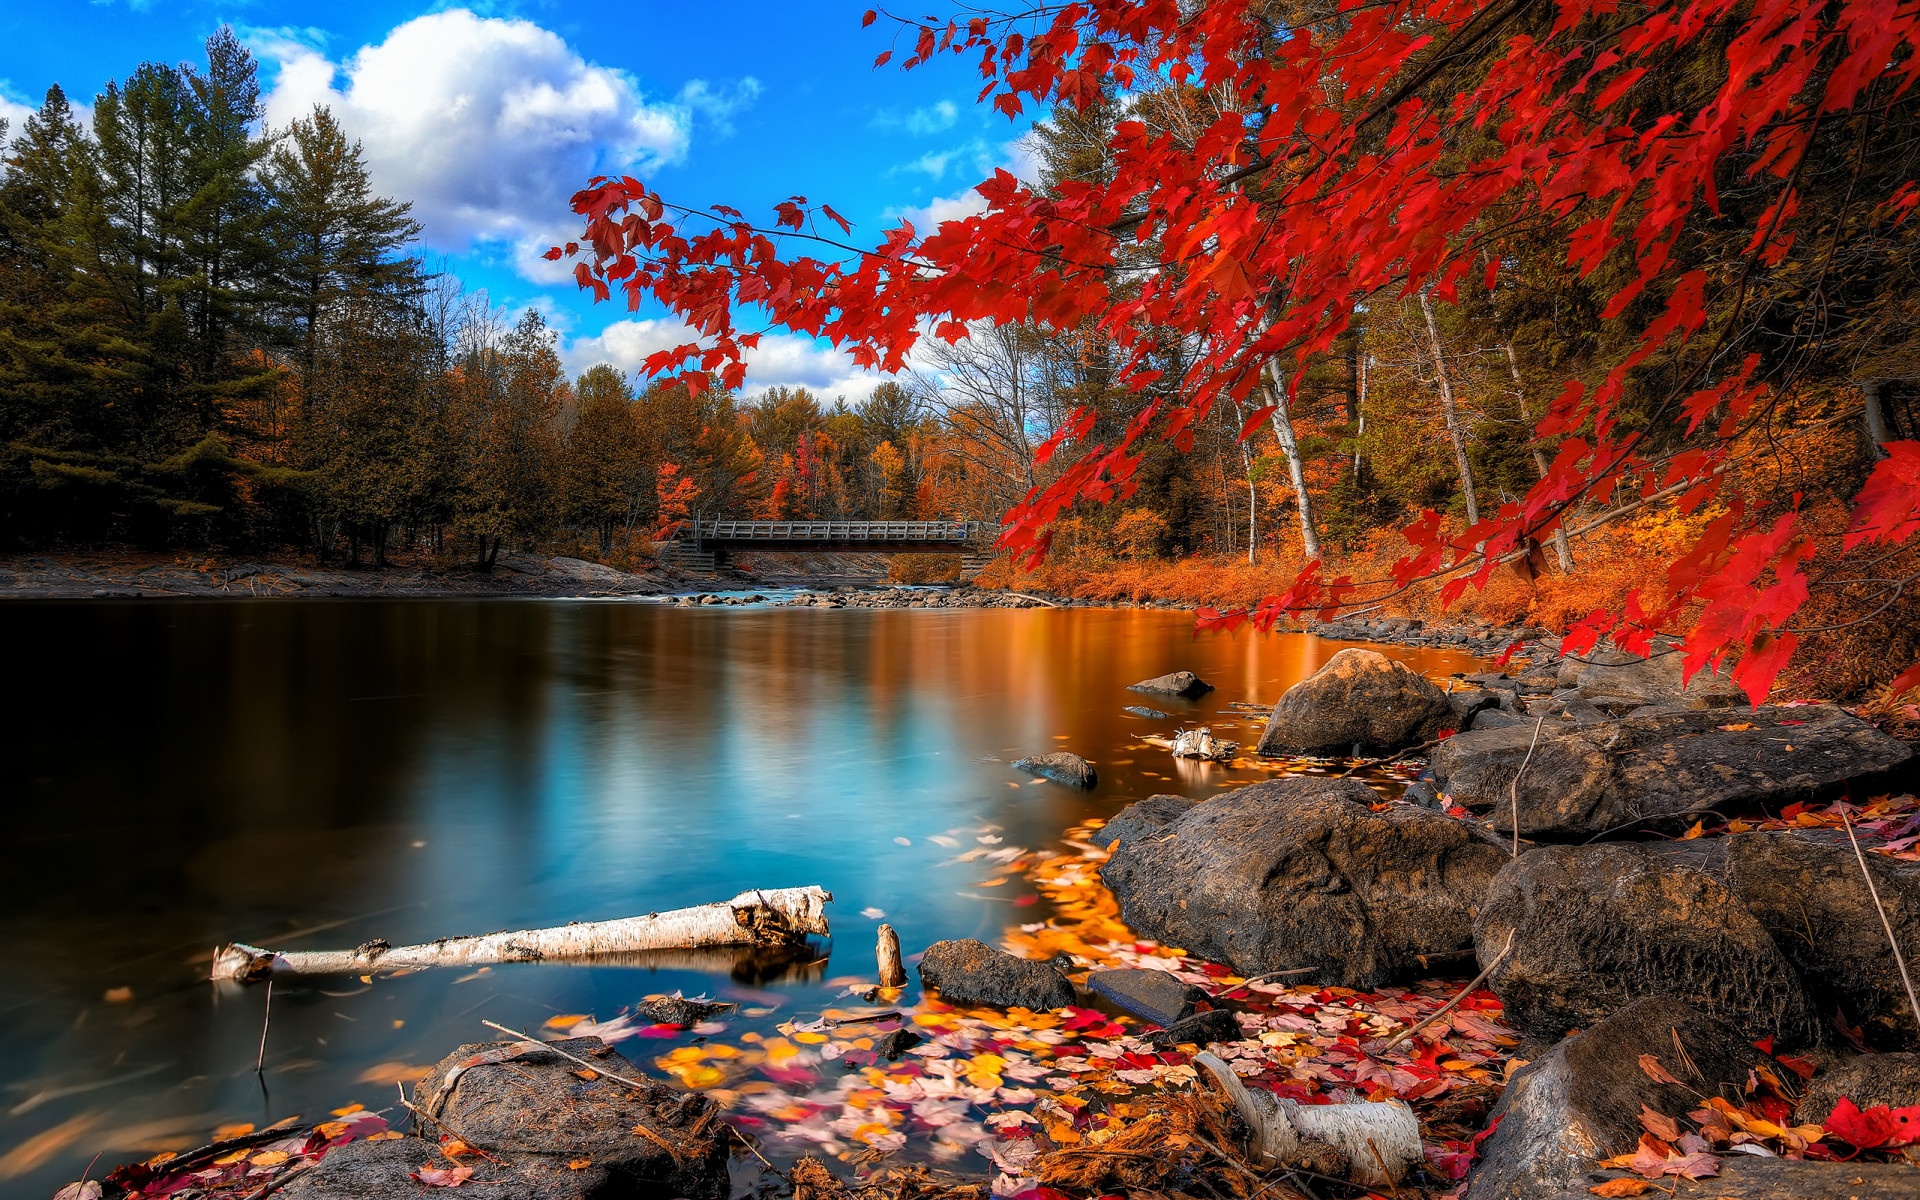 Fall Landscape Desktop Wallpaper Wallpapersafari